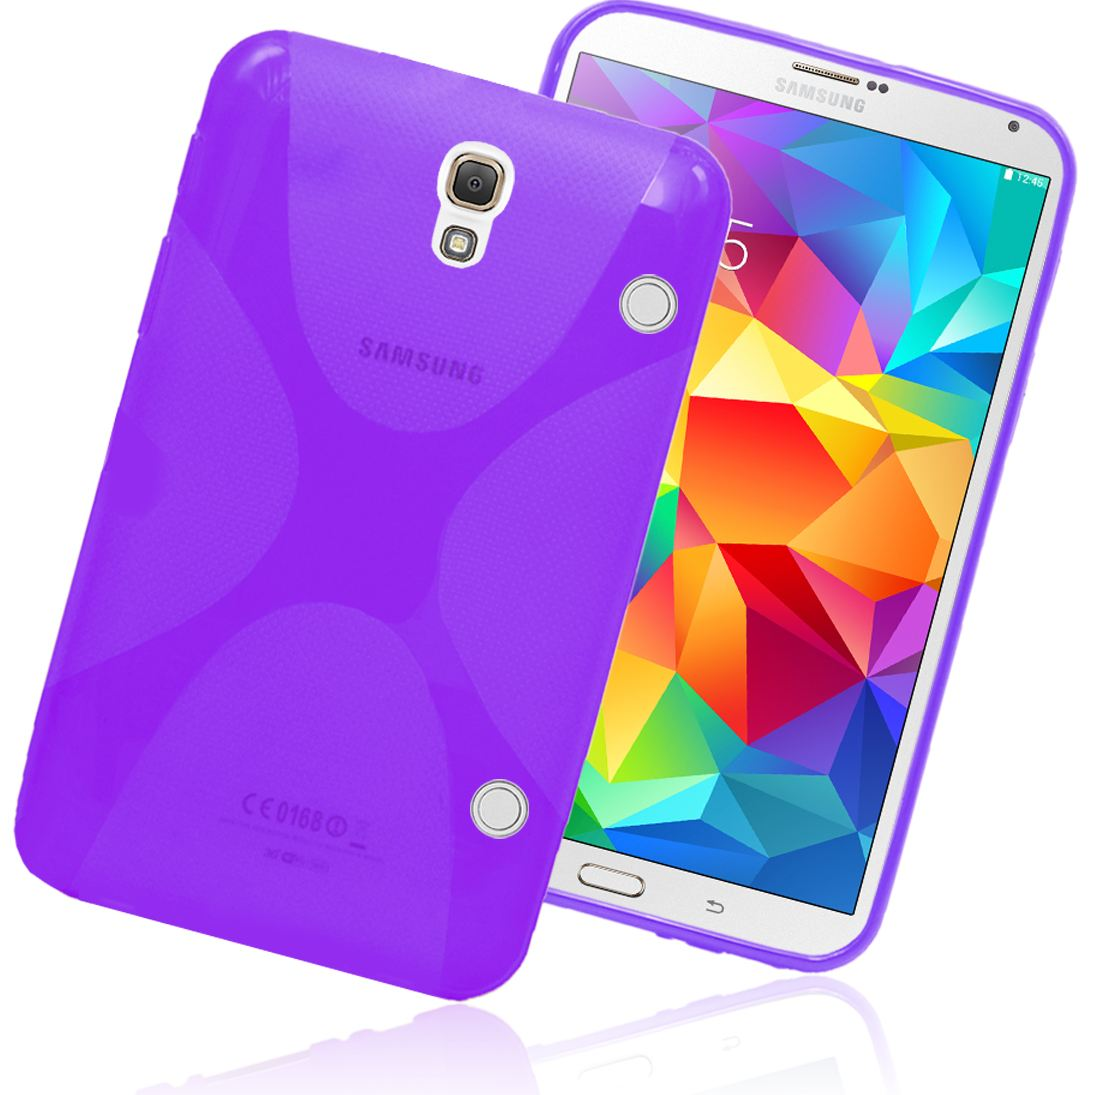 custodia in silicone per tablet samsung t705